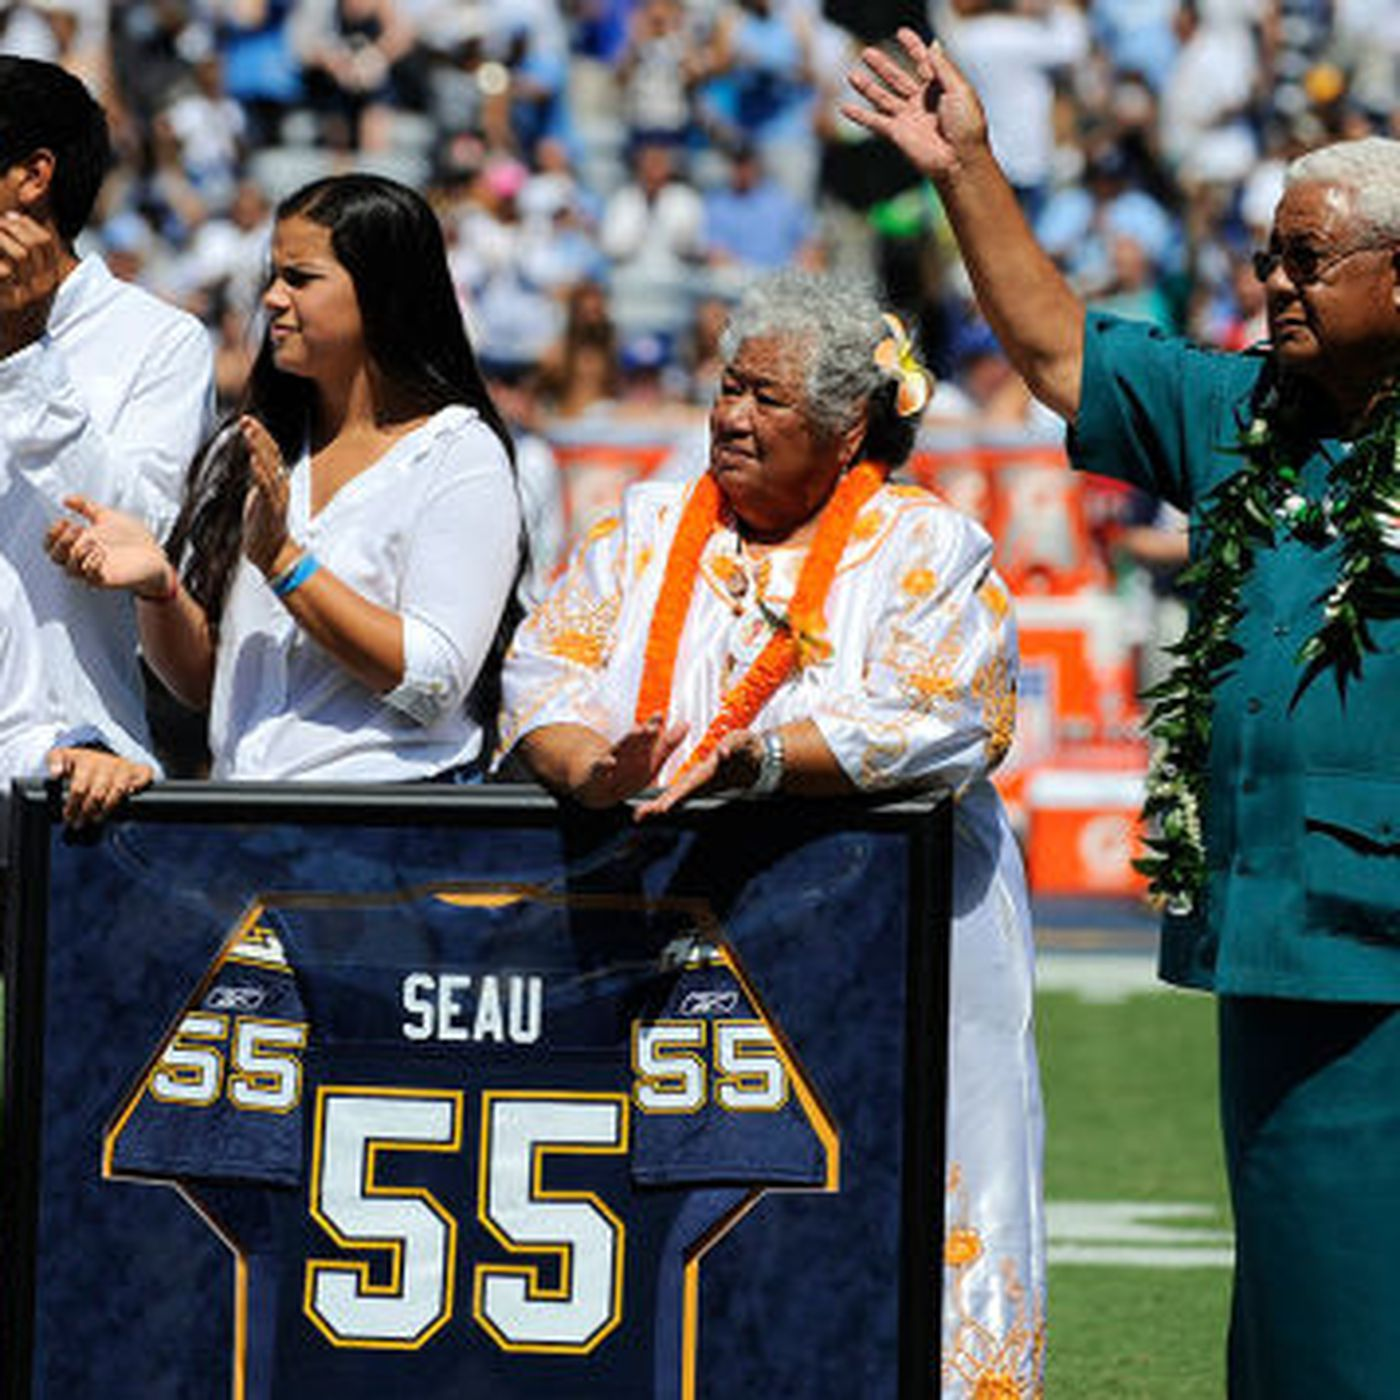 9ea0e3d18 NFL Weekend  NFL Goes Dark On Seau Family... - Turf Show Times